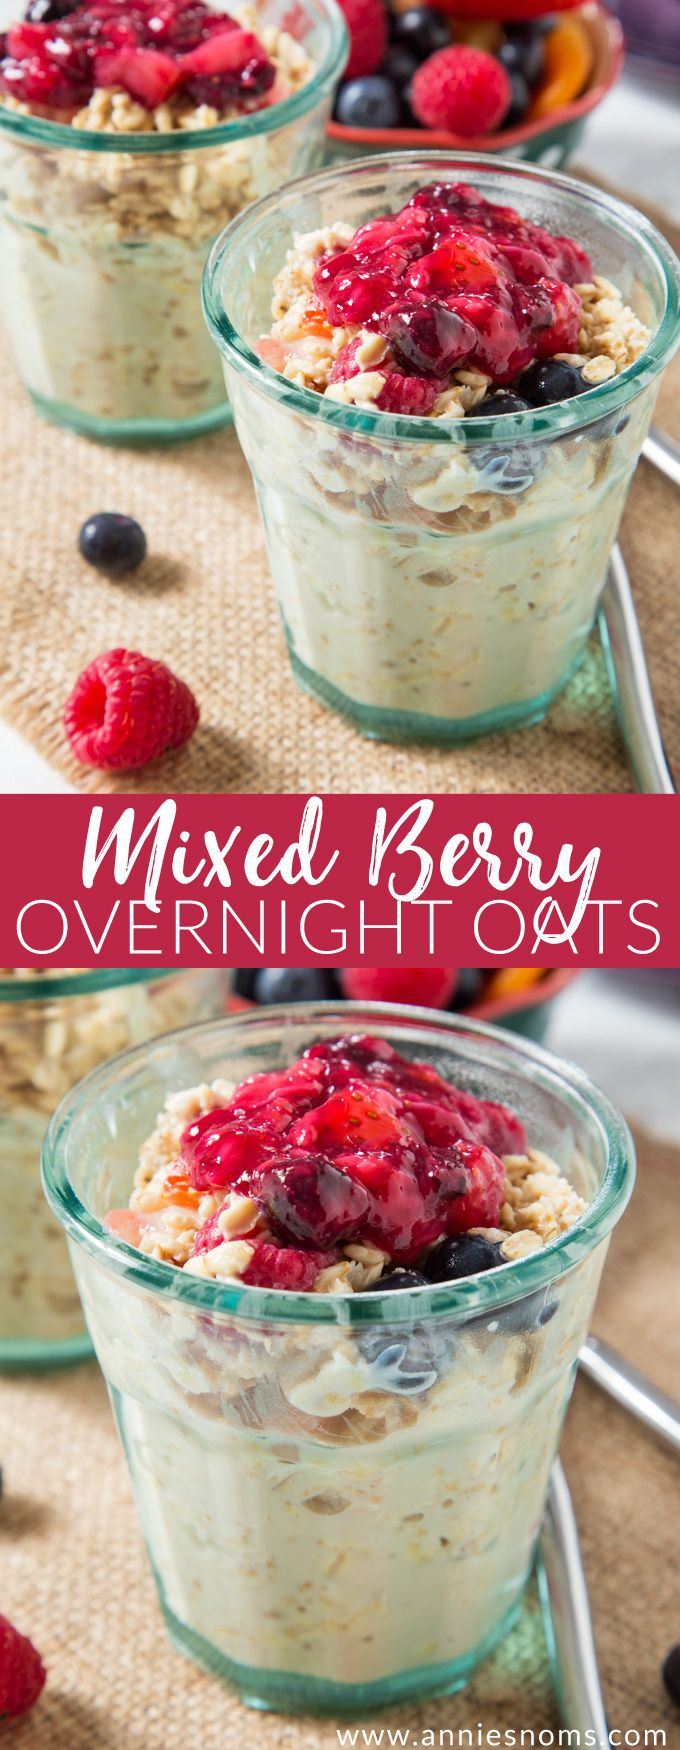 These creamy Mixed Berry Overnight Oats are super easy to make and packed with so much flavour! The perfect way to jazz up your oatmeal!